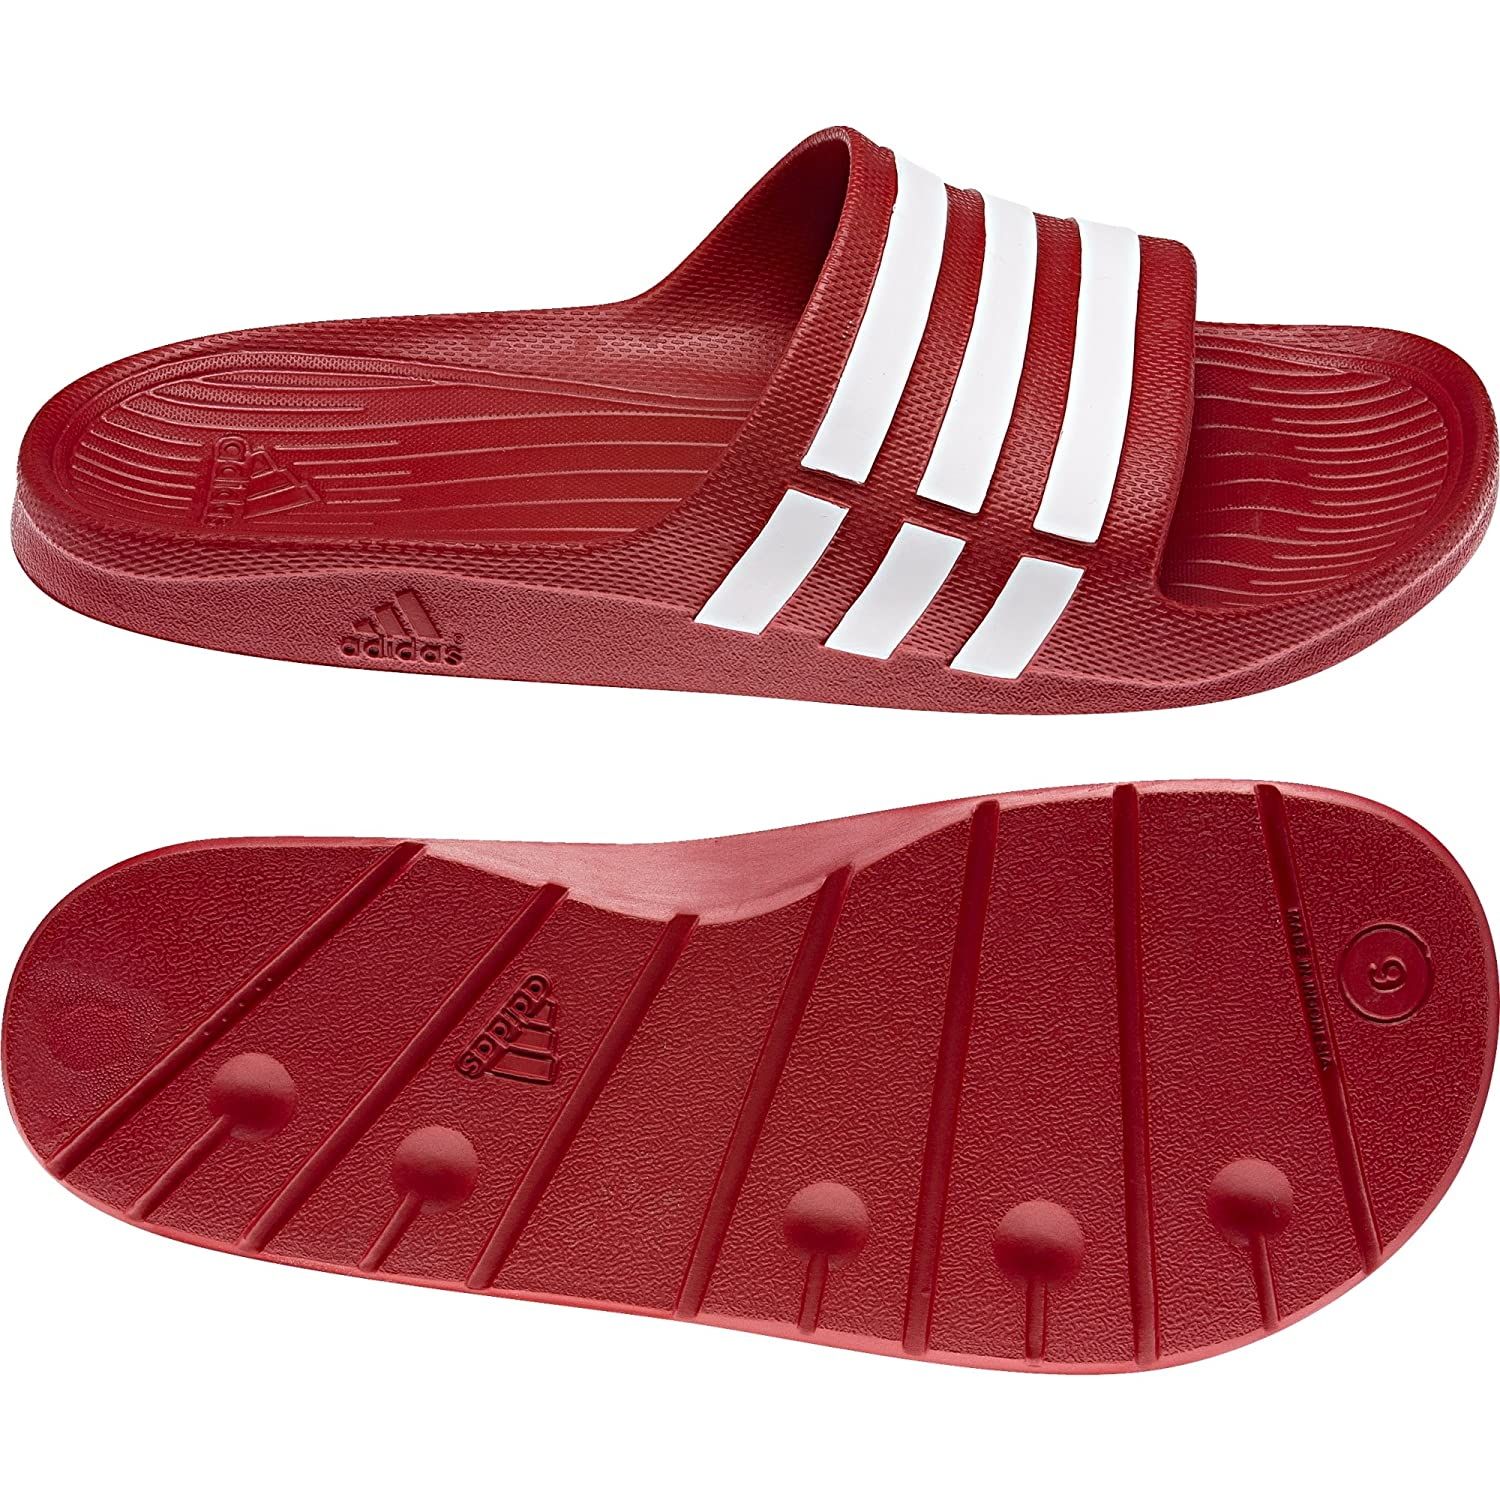 adidas Duramo - Slide - Adulte Mules natation - Mixte Mixte Adulte red 0cf9b75 - reprogrammed.space